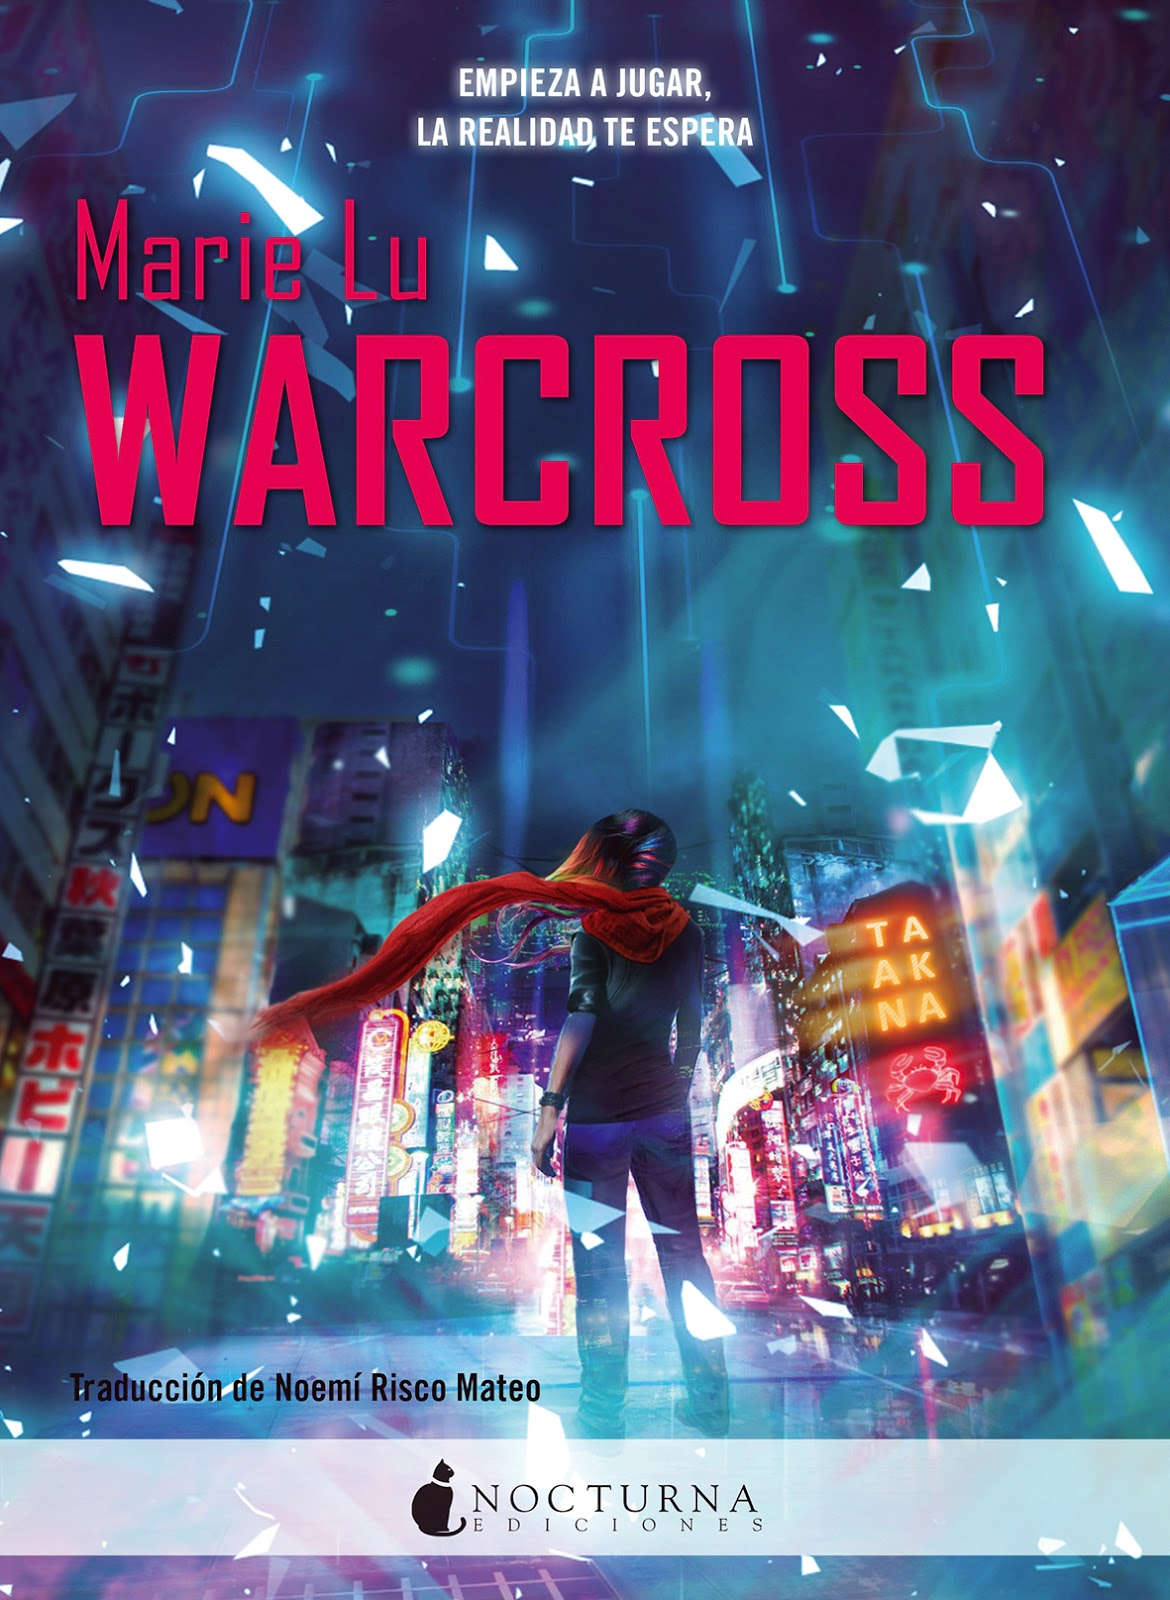 Nocturna Libro Pretty Little Human Reseña Warcross 1 2